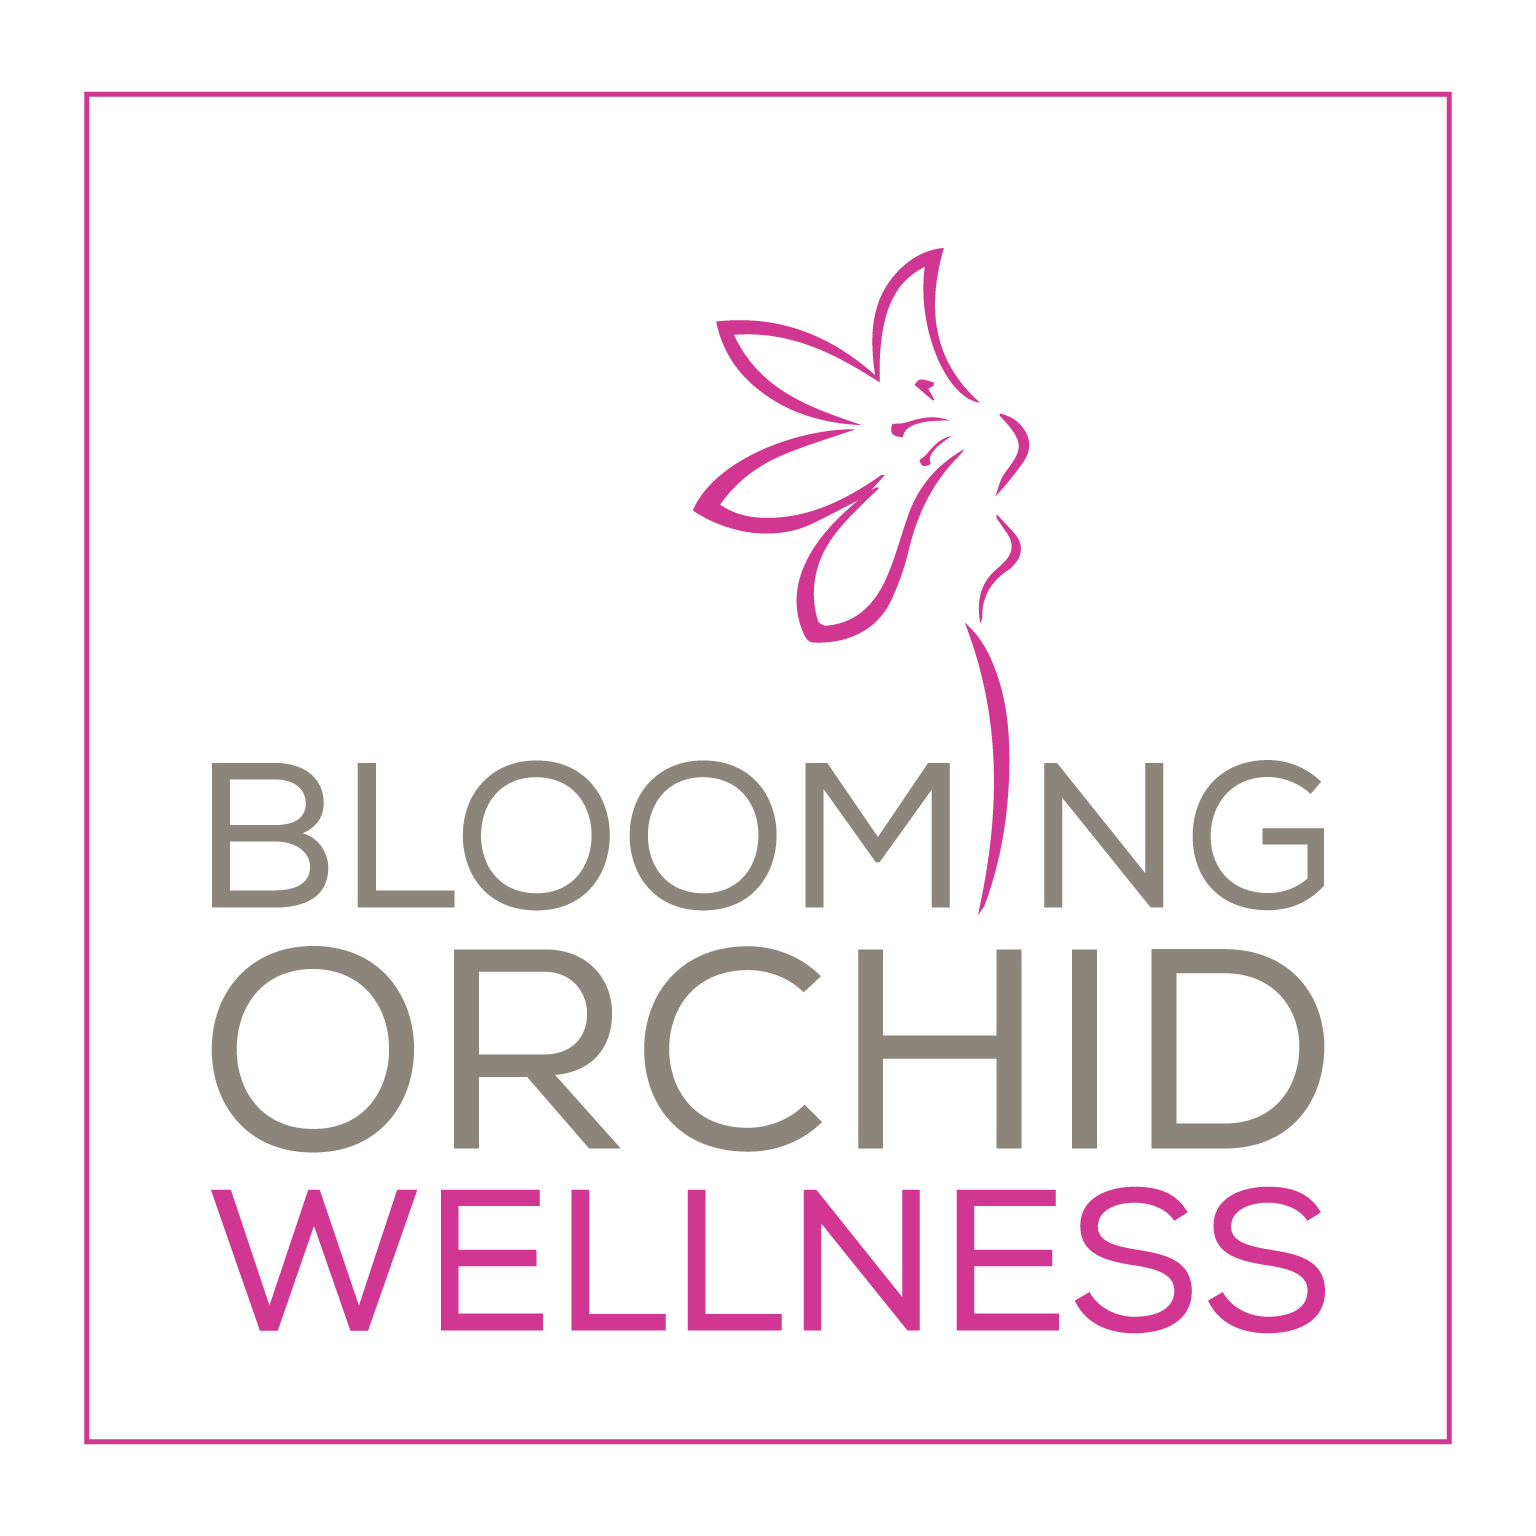 Blooming Orchid Wellness